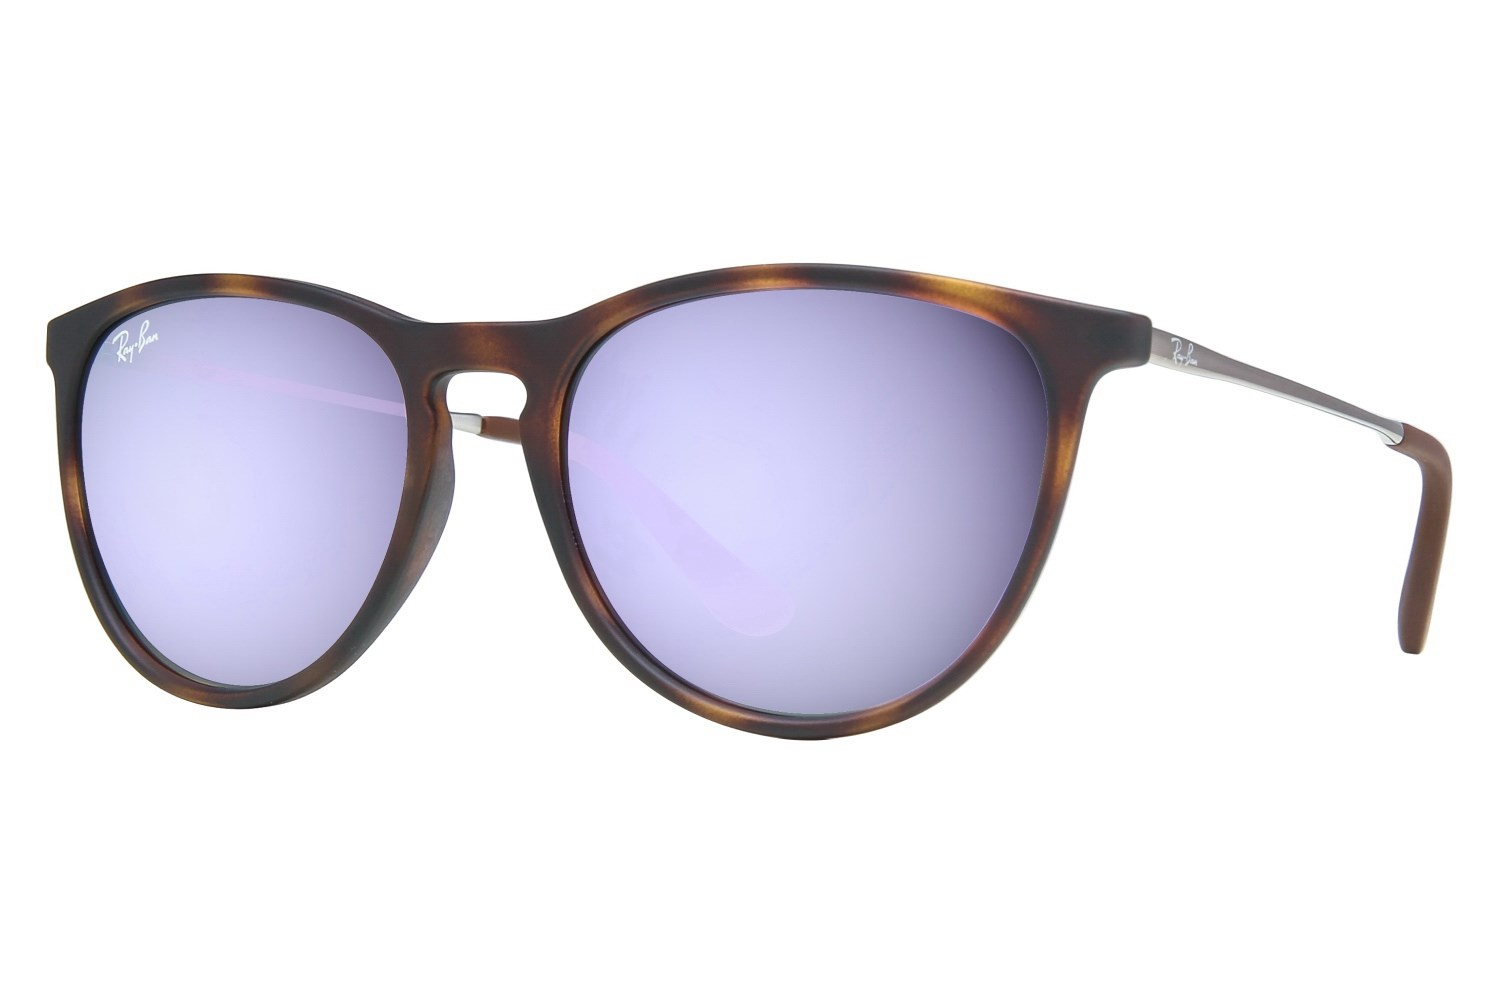 Lenscrafters coupons for sunglasses